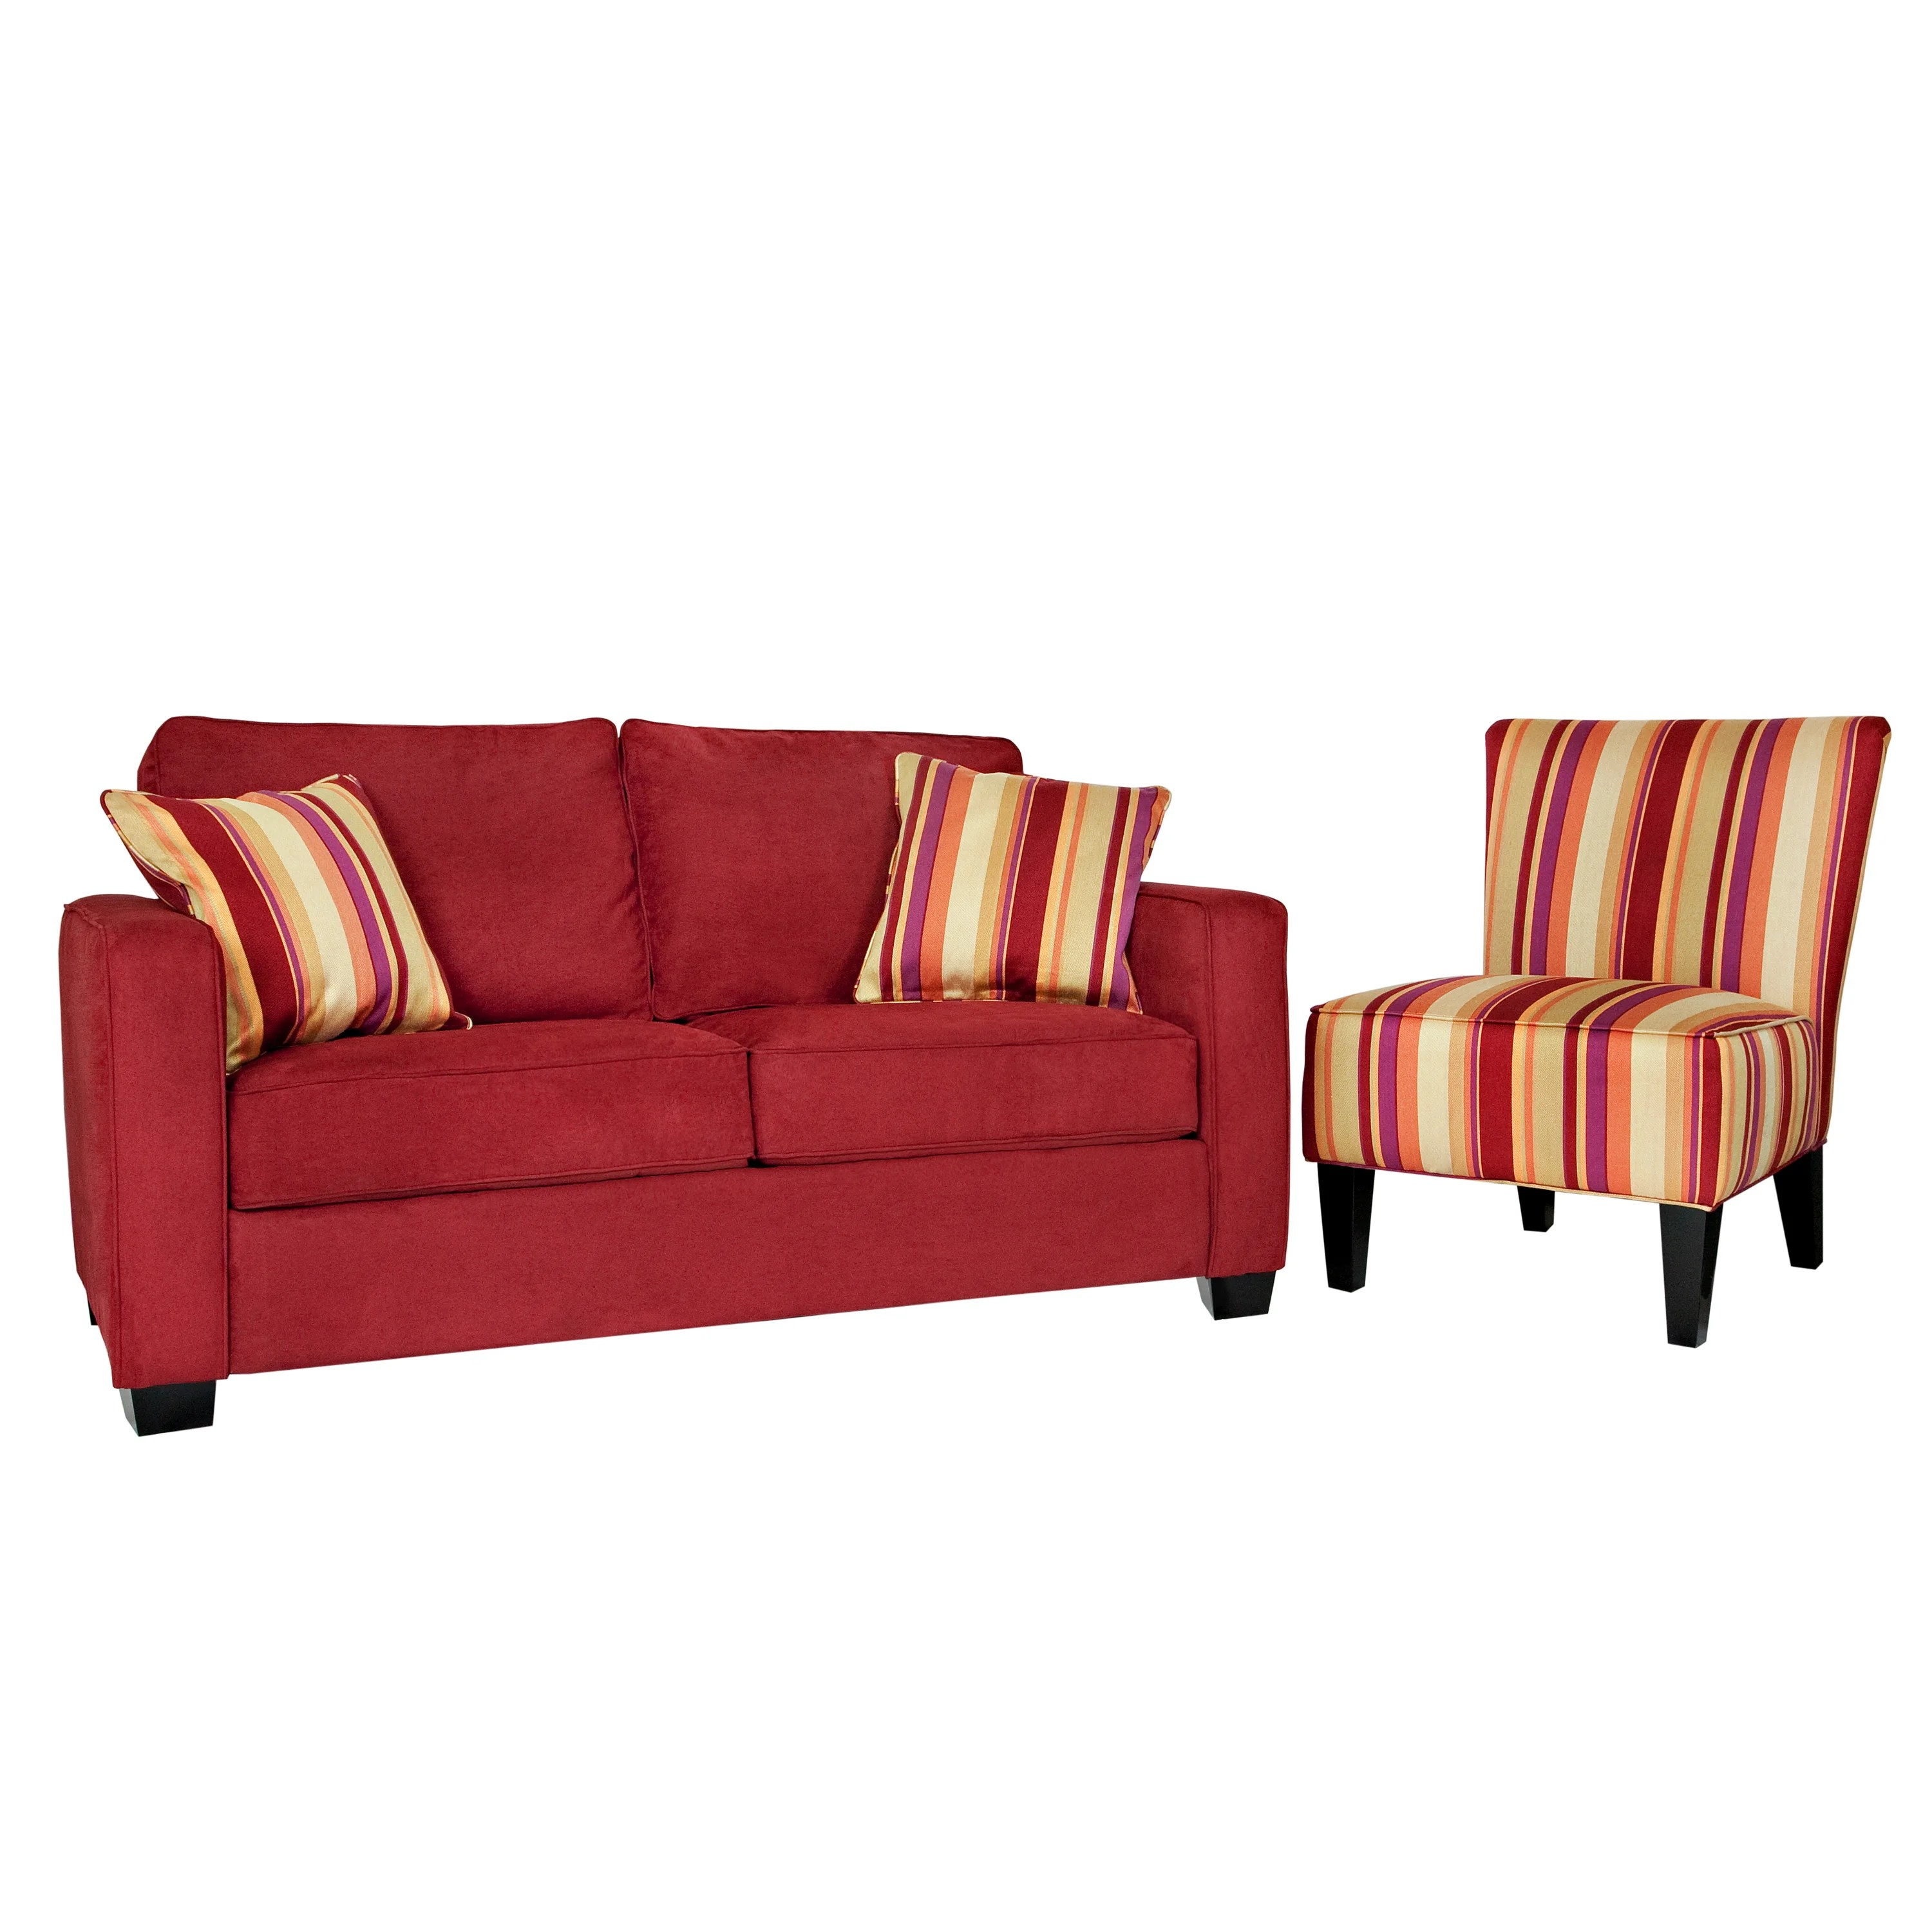 Red Striped Chair Portfolio Madi Crimson Red Sofa And Hali Striped Wine